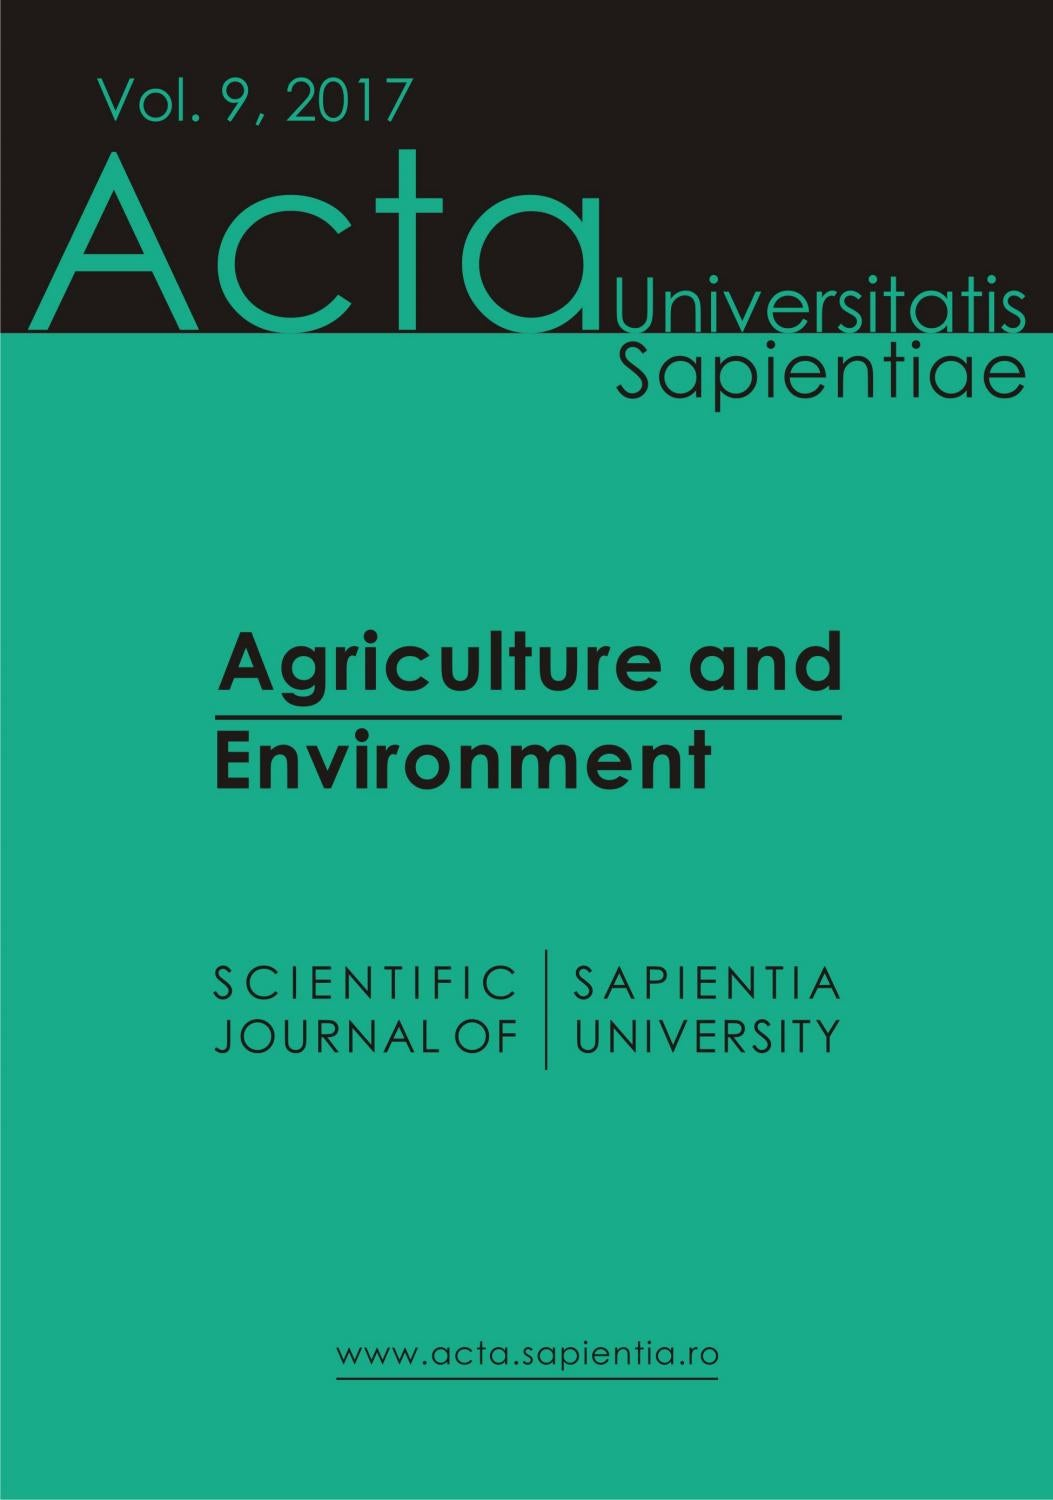 Agriculture and Environment Vol  9, 2017 by Acta